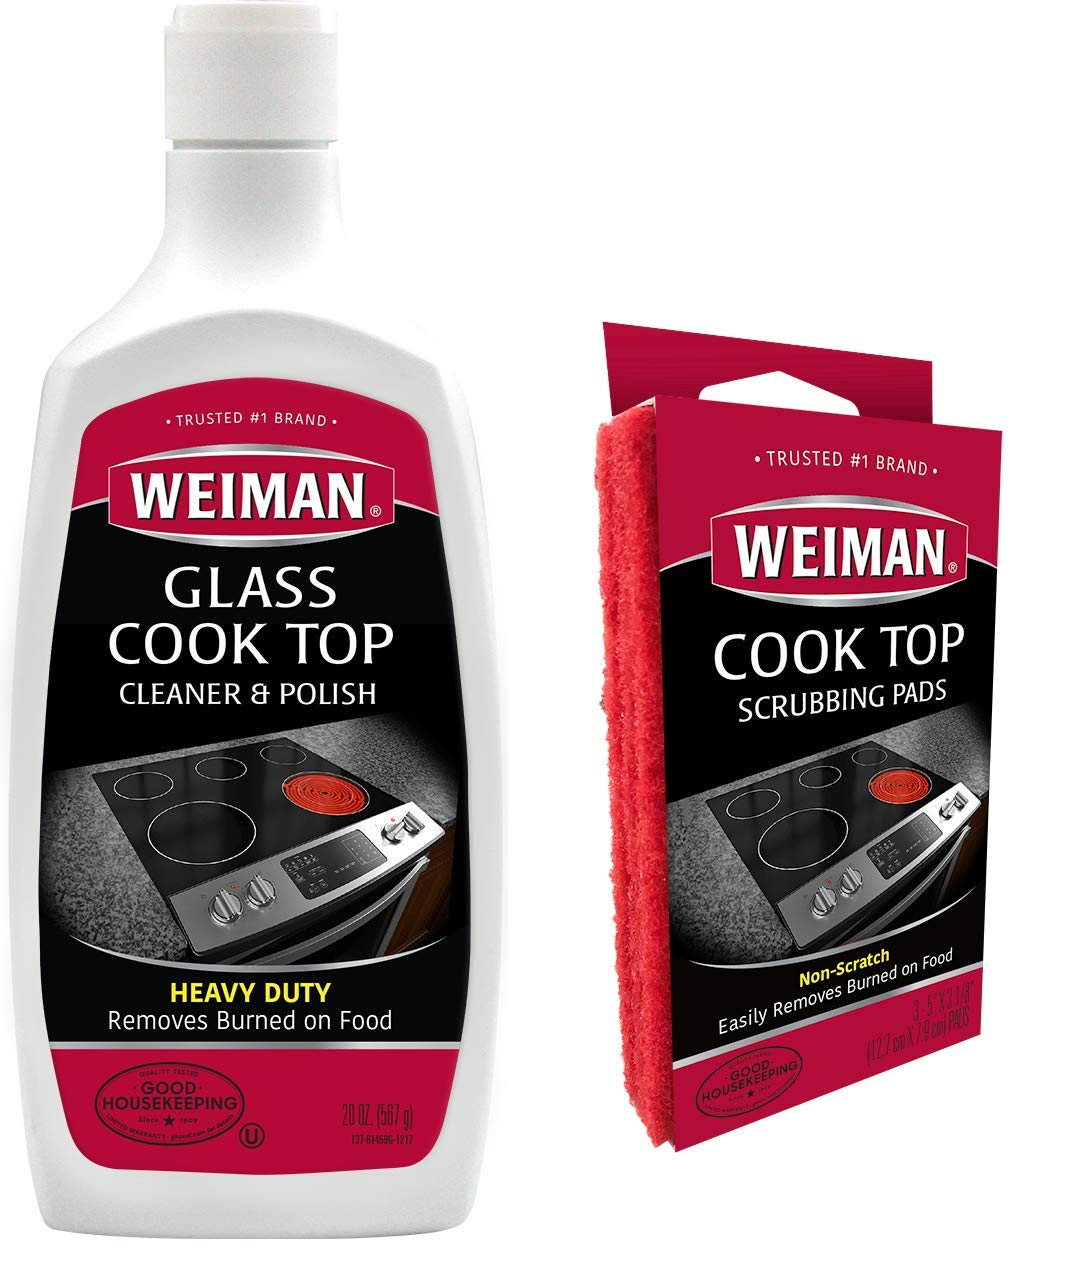 Weiman Ceramic & Glass Cooktop Cleaner and Polish - 20 Ounce - 3 Pads - Heavy Duty Cooktop Scrubbing Pads - Shines and Protects Glass and Ceramic Smooth Top Ranges with its Gentle Formula